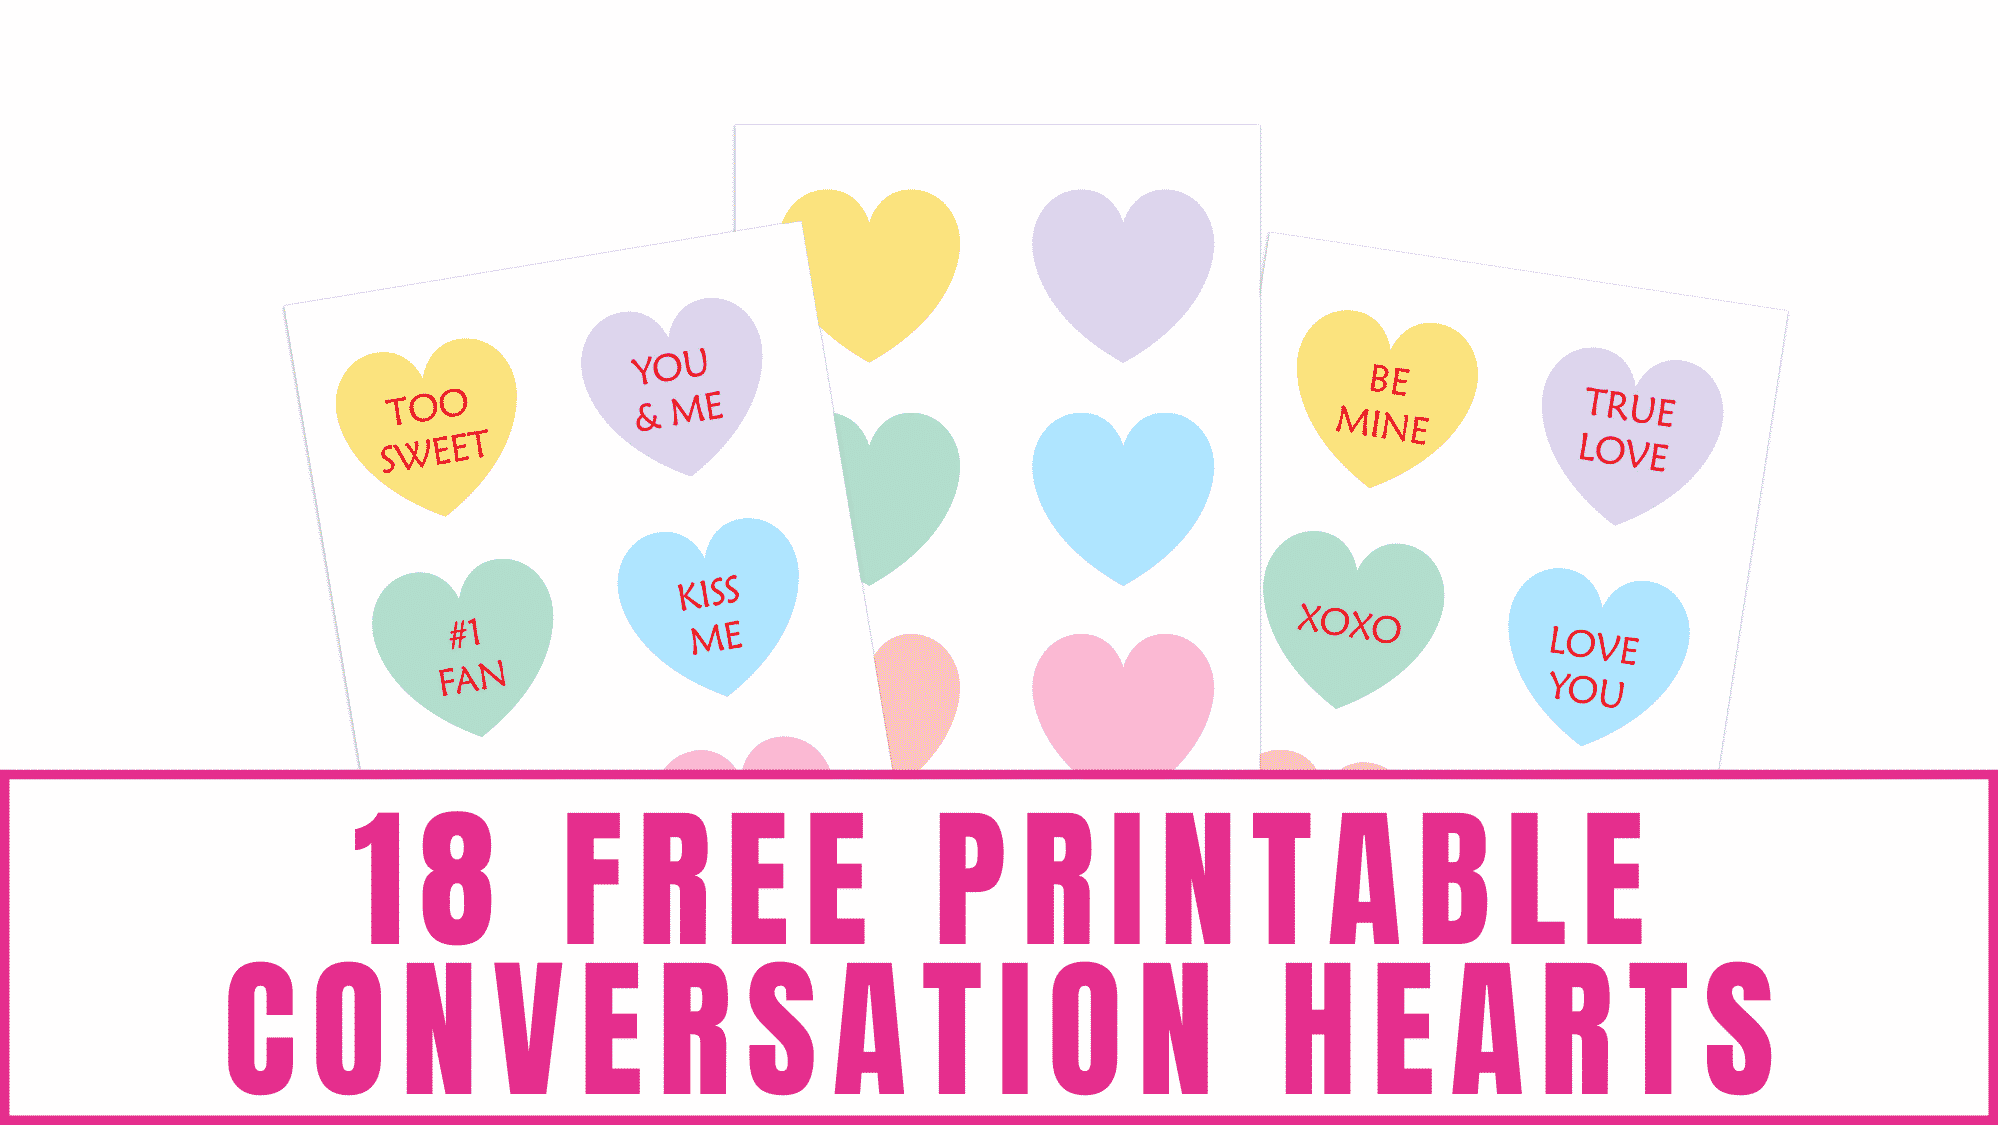 These free printable conversation hearts may not taste as sweet as the candy, but they still send a sweet message to someone special.